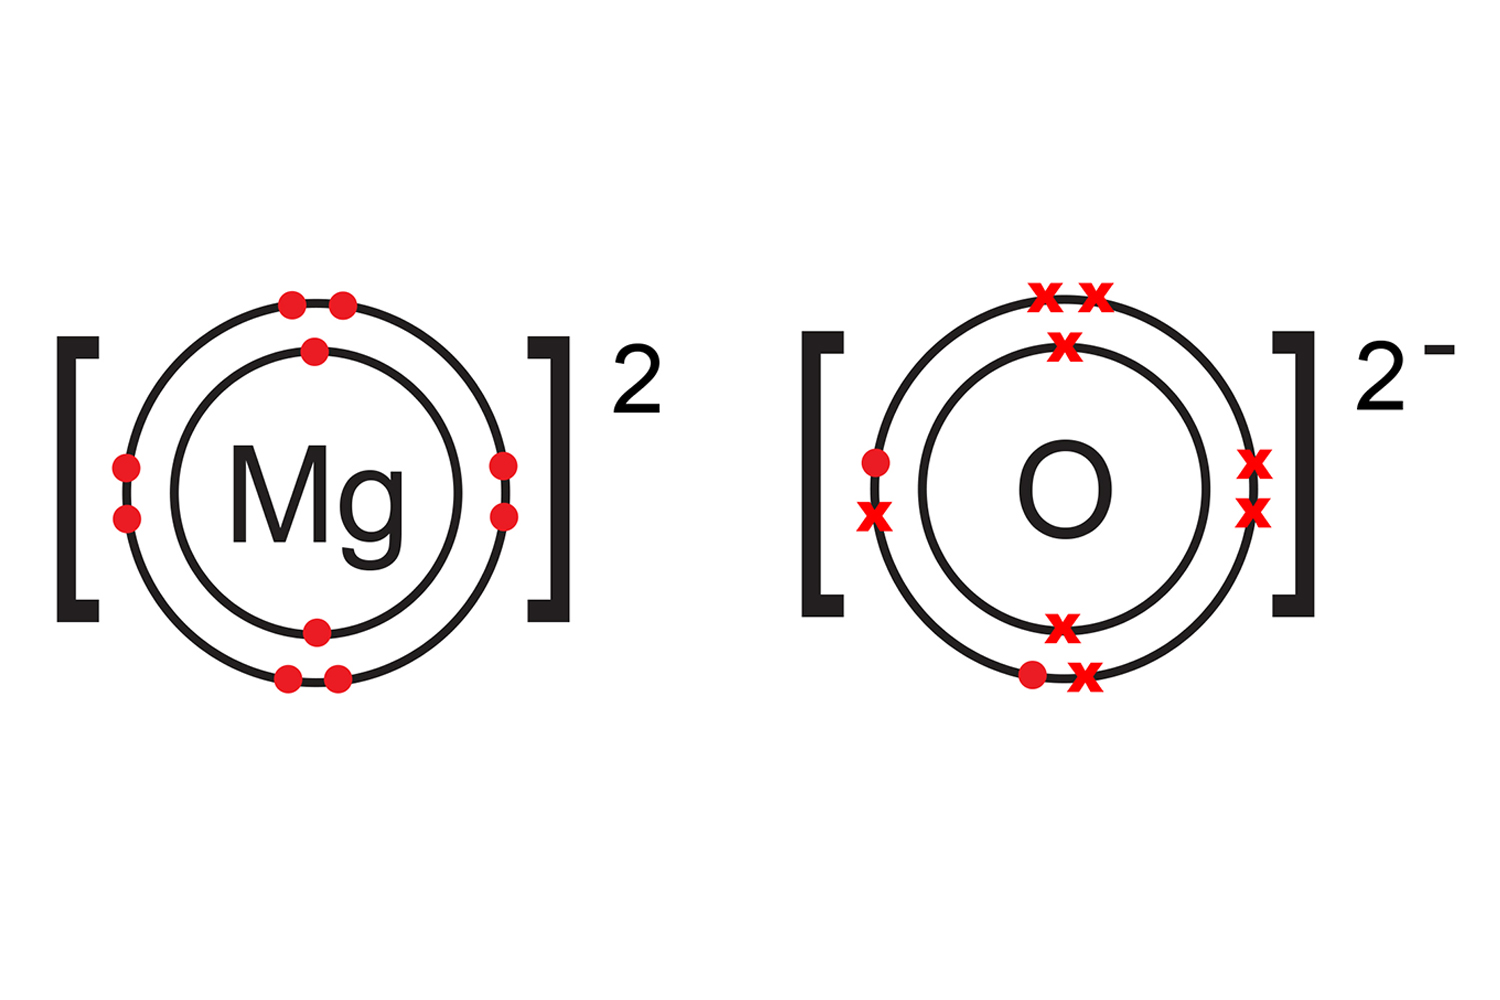 Magnesium is now positive so it is Mg2+ and oxygen is negatively charged so it is an Oxide ion O2-